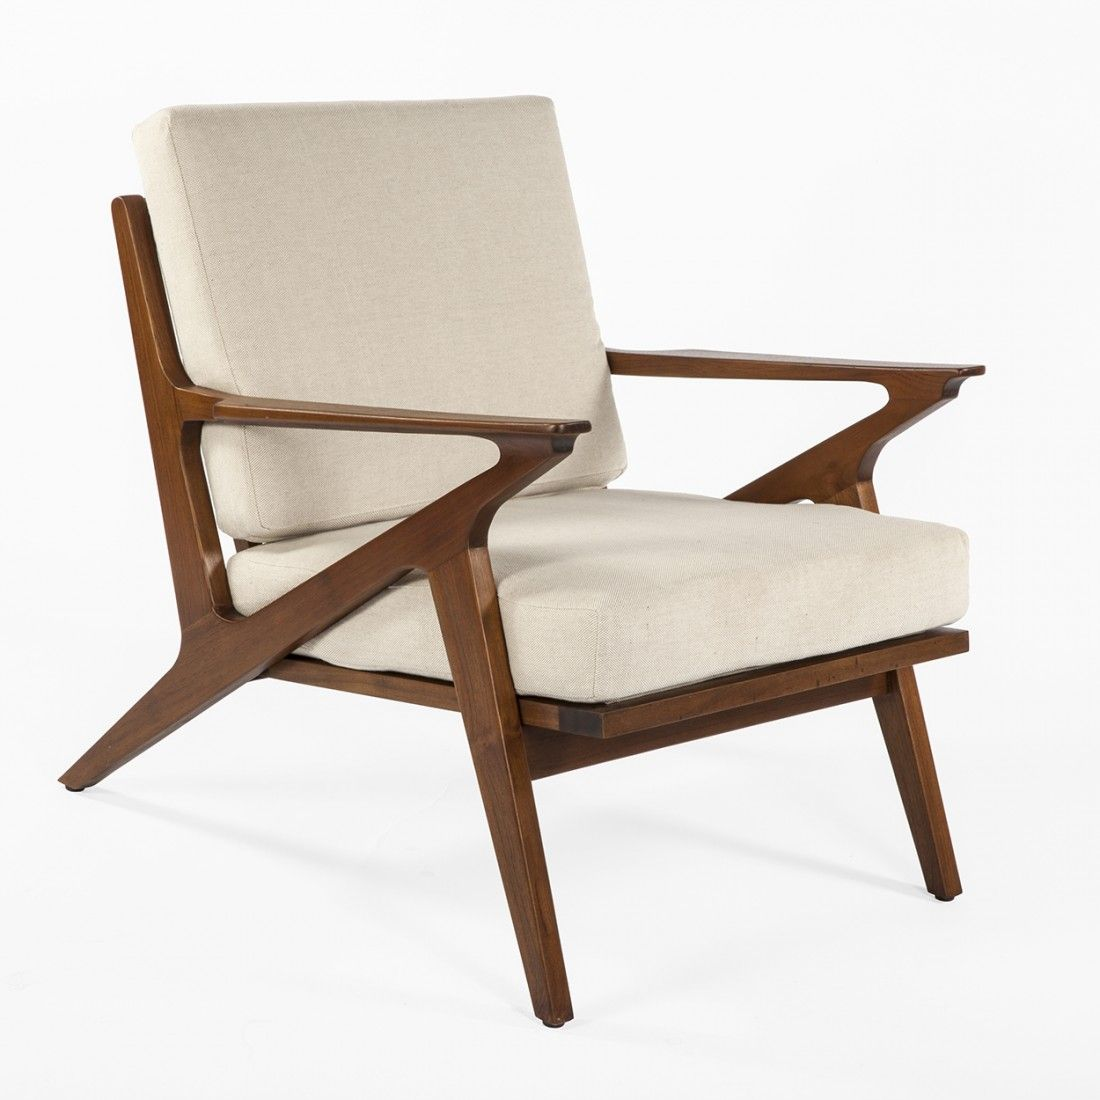 Mid Century Modern Reproduction Mid Century Z Lounge Chair   Beige Inspired  By Poul Jensen